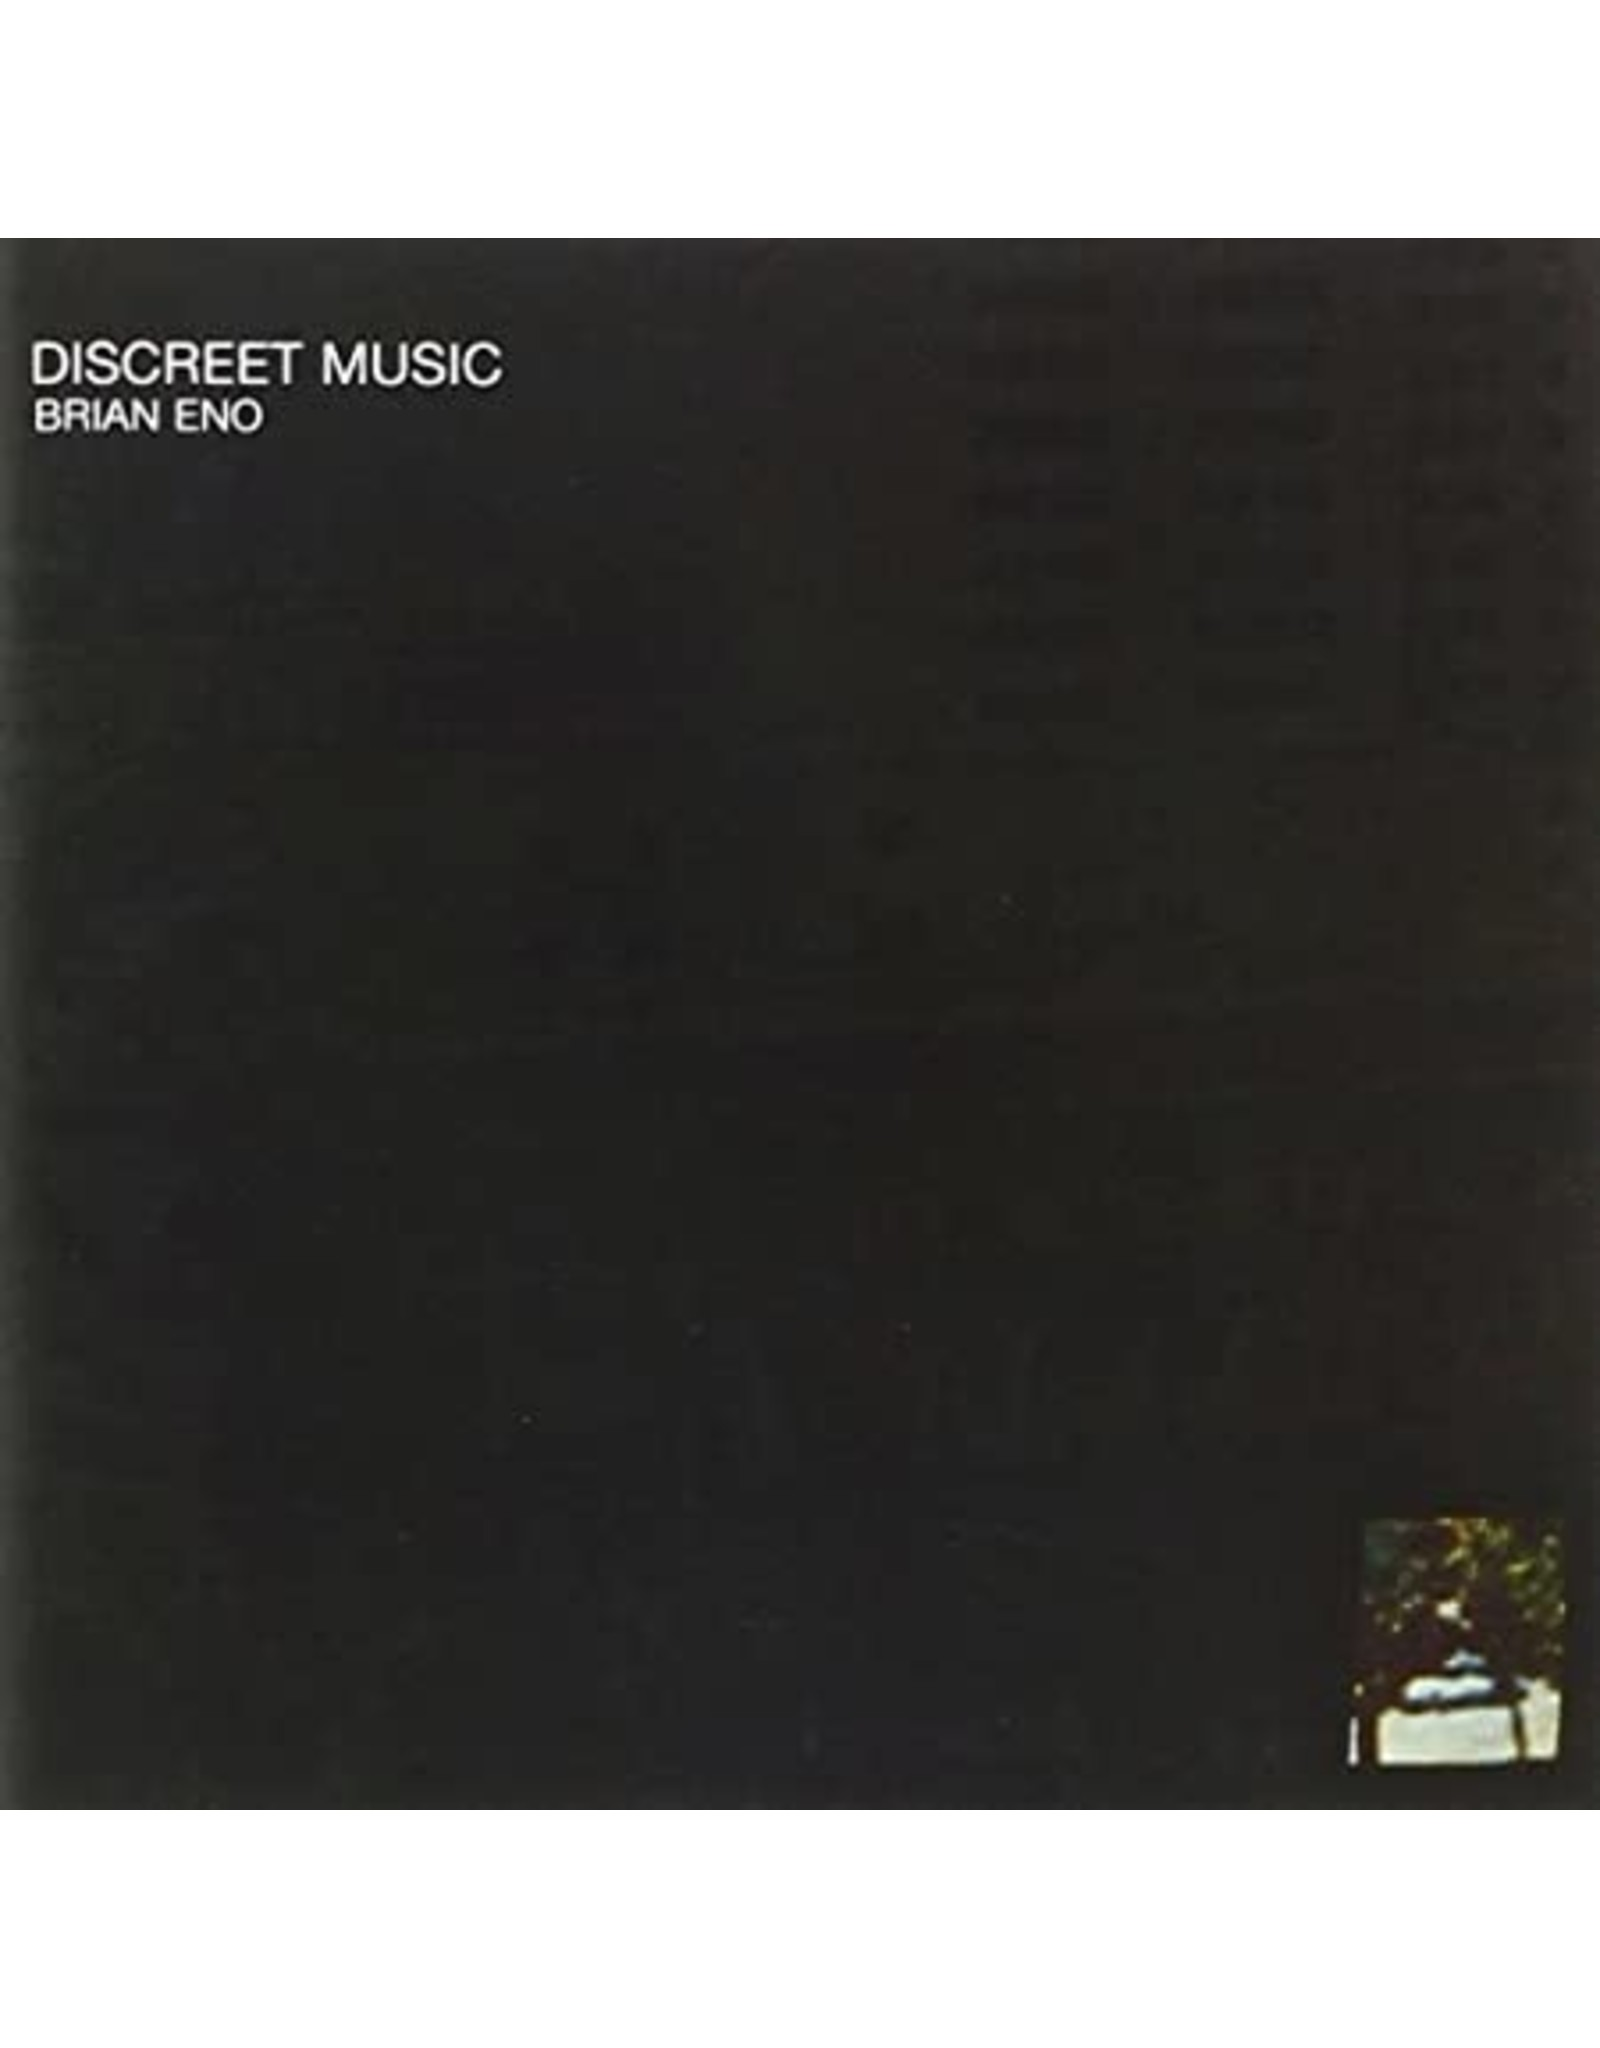 New Vinyl Brian Eno - Discreet Music LP